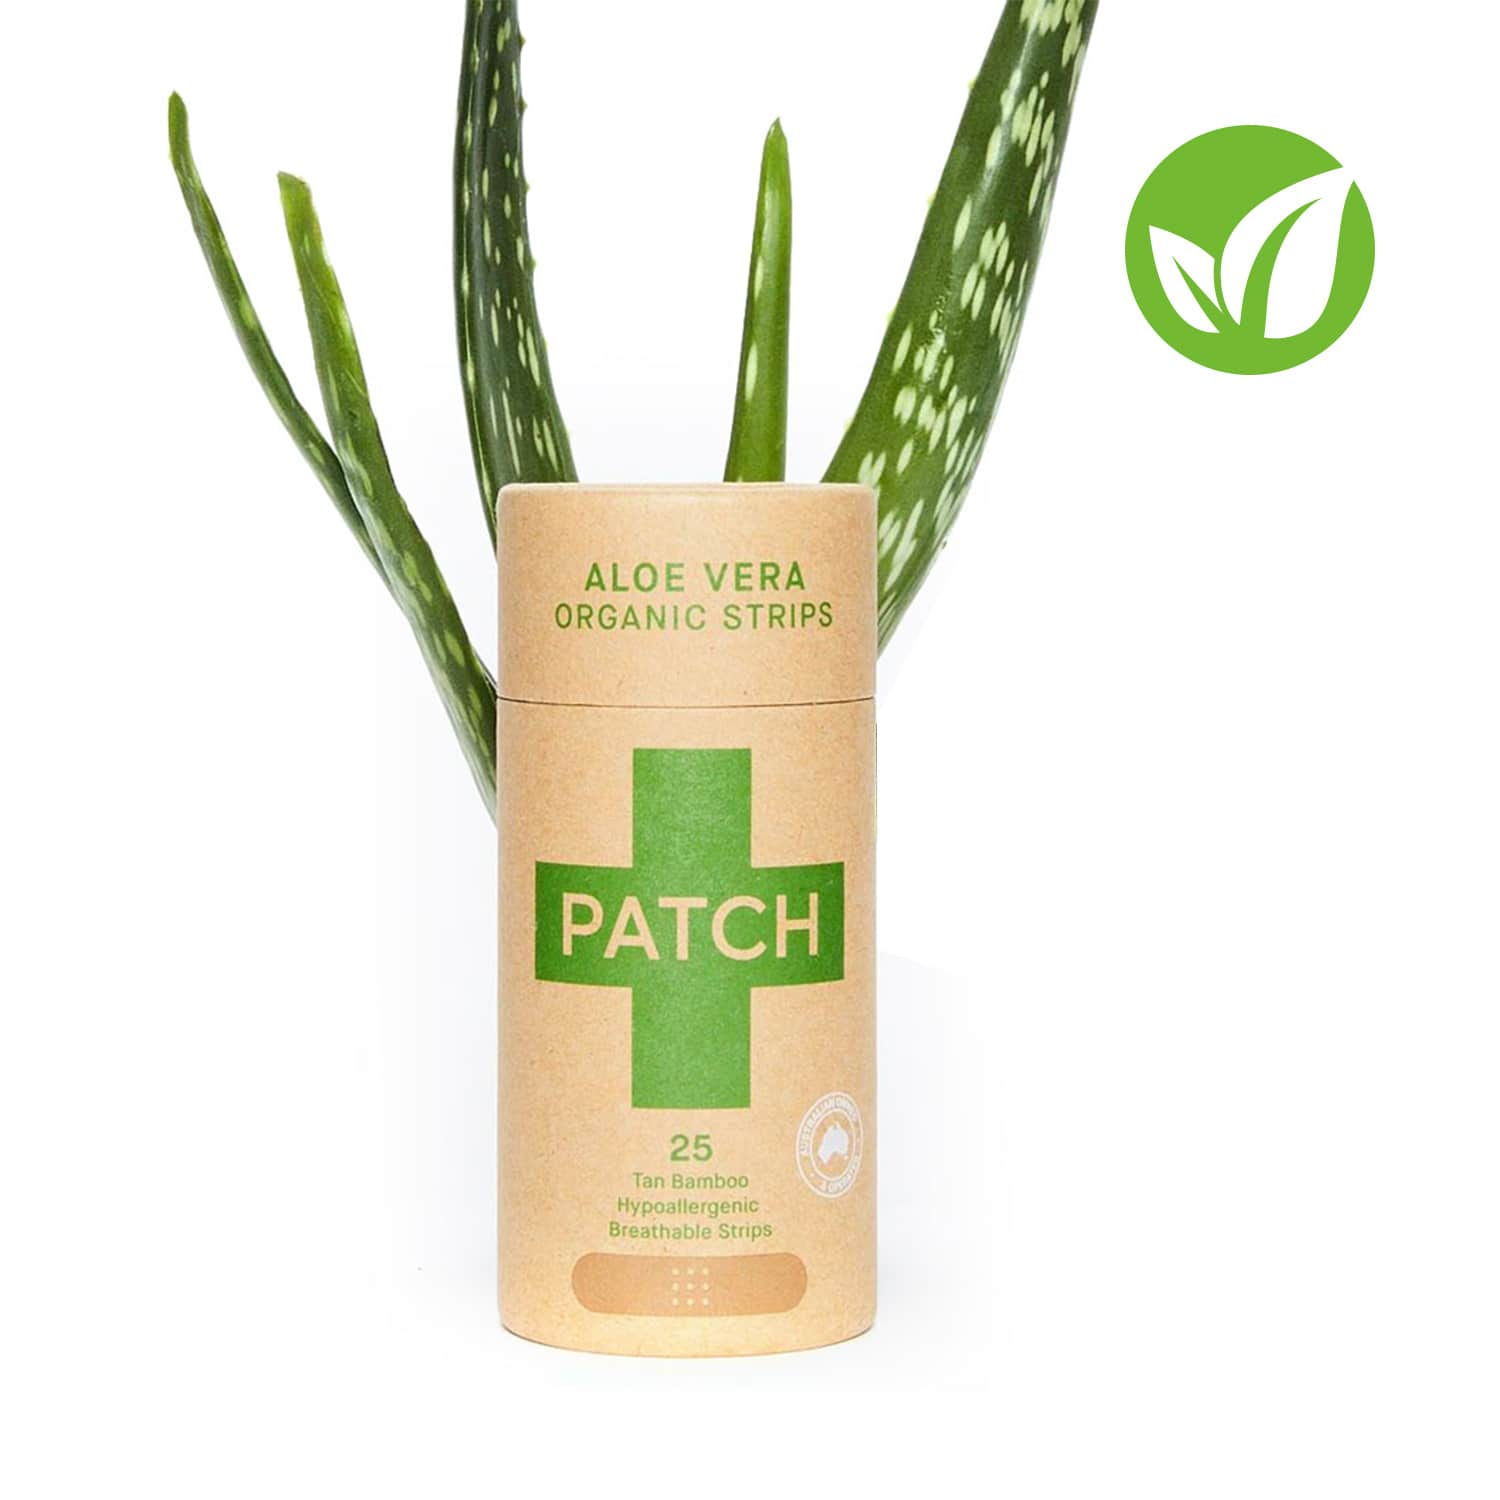 https://static.praxisdienst.com/out/pictures/generated/product/1/1500_1500_100/603981_patch_bambus-pflaster_aloe_vera_2_eco.jpg